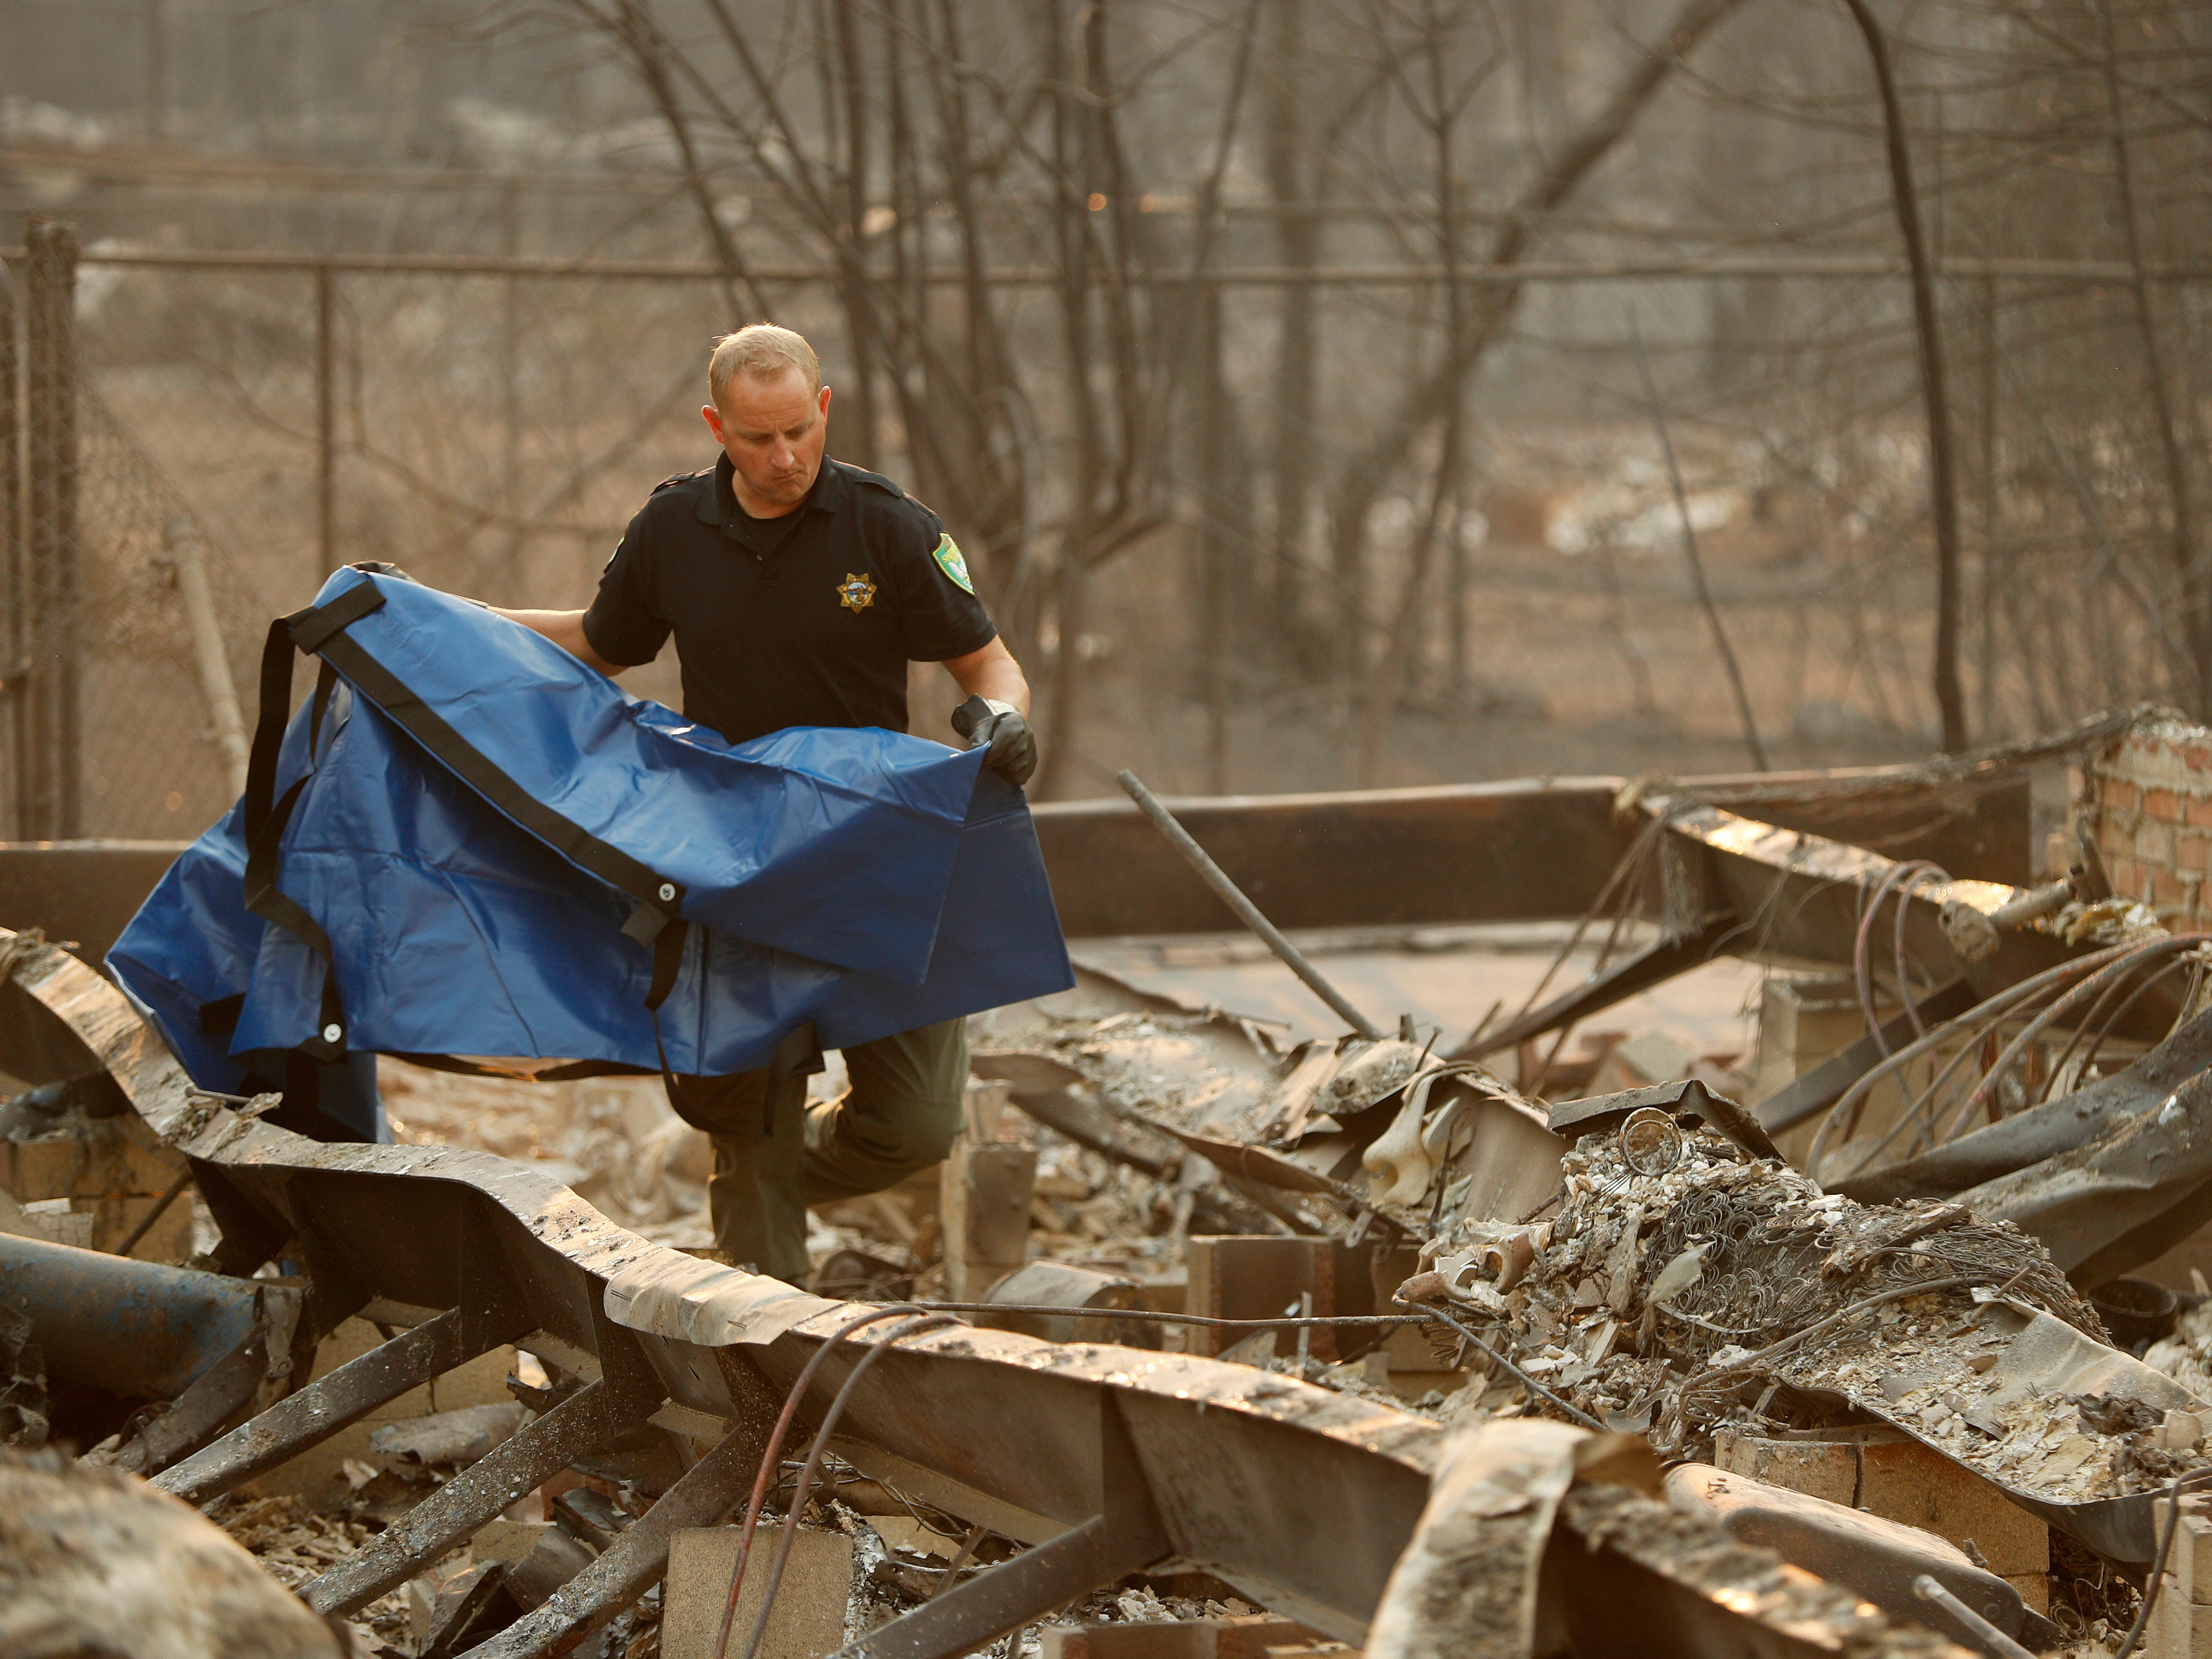 Sgt. Nathan Lyberger of the Yuba County Sheriff Department, prepares a bag to move human remains found at a burned out home at the Camp Fire on Nov. 11, 2018, in Paradise, Calif.